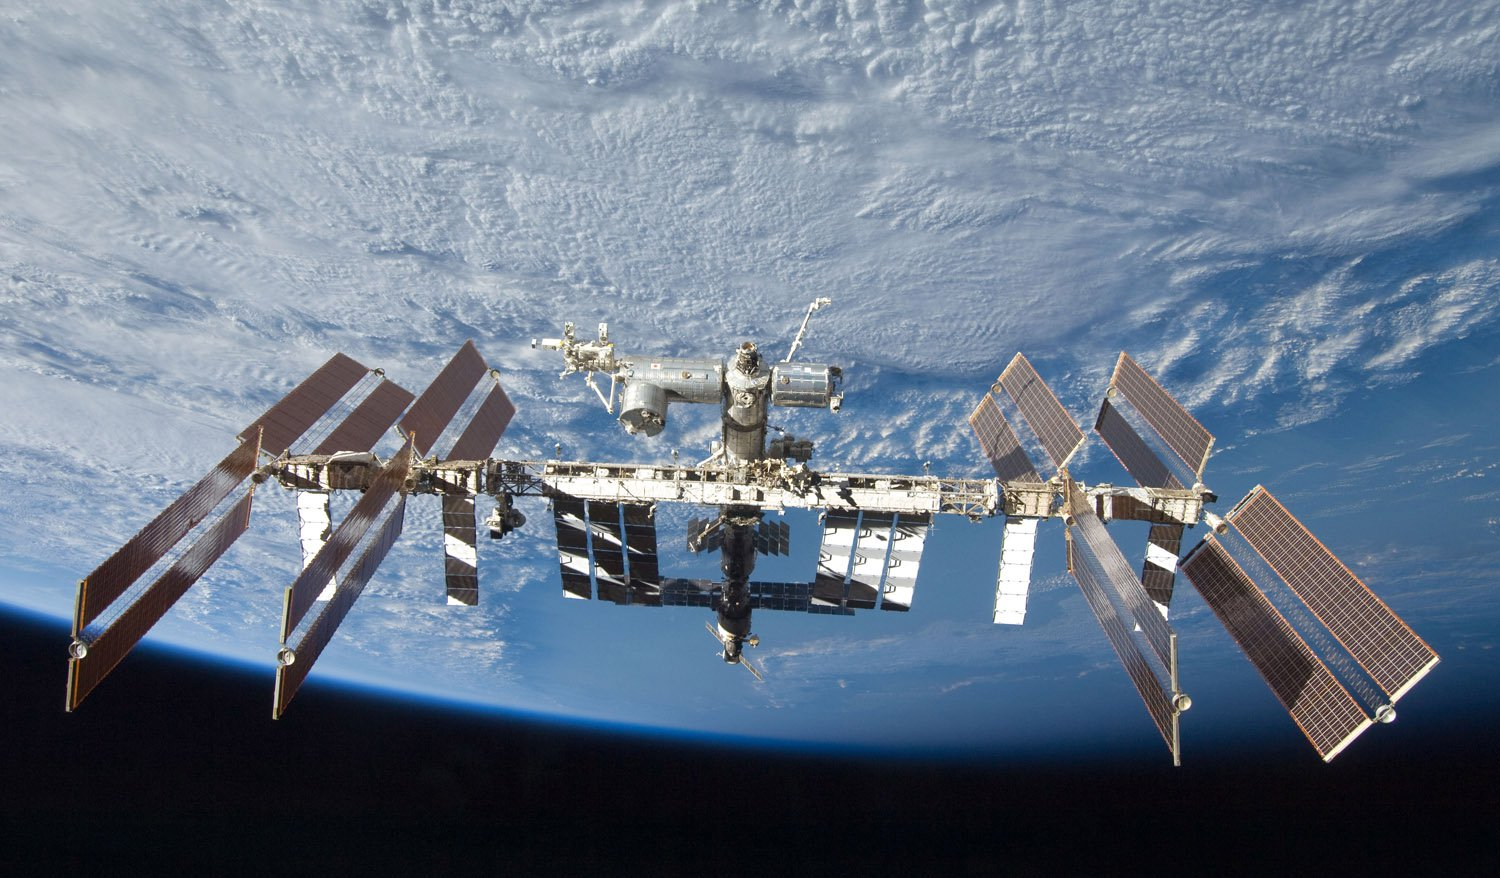 10 interesting facts about the International space station